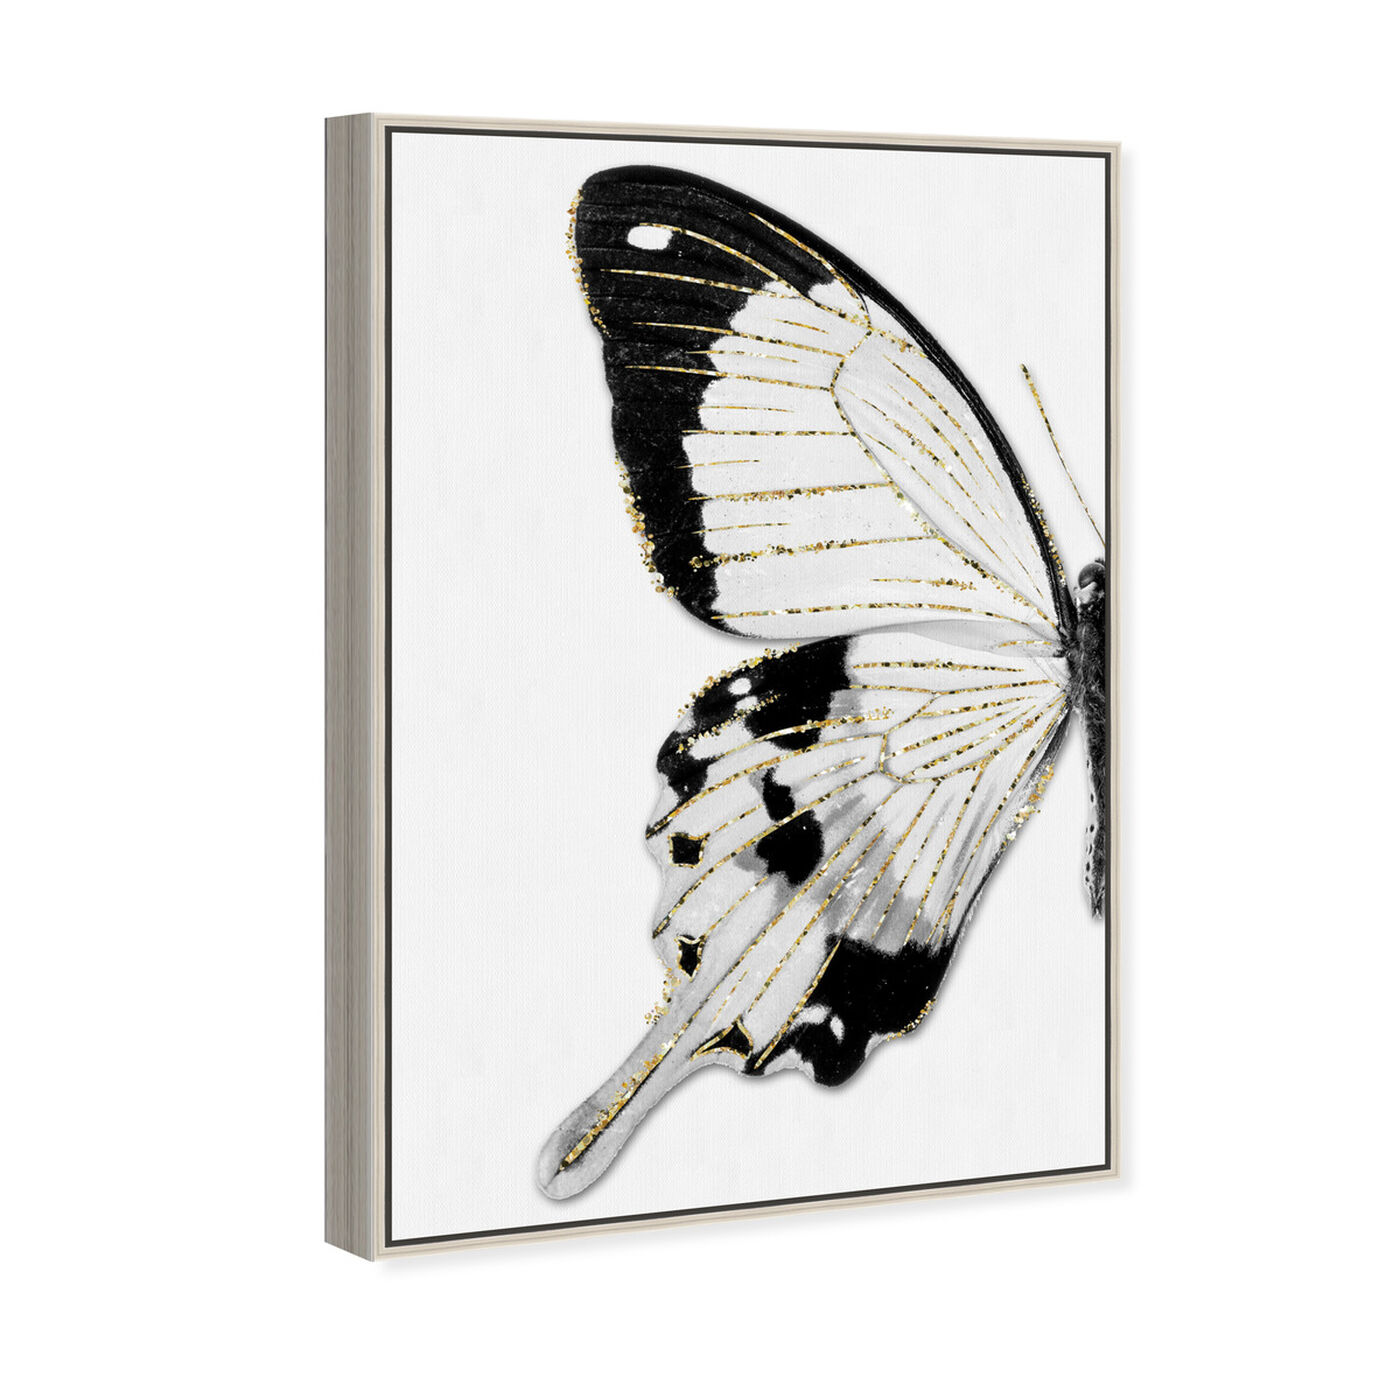 Angled view of Monochrome Glitter Butterfly II featuring animals and insects art.